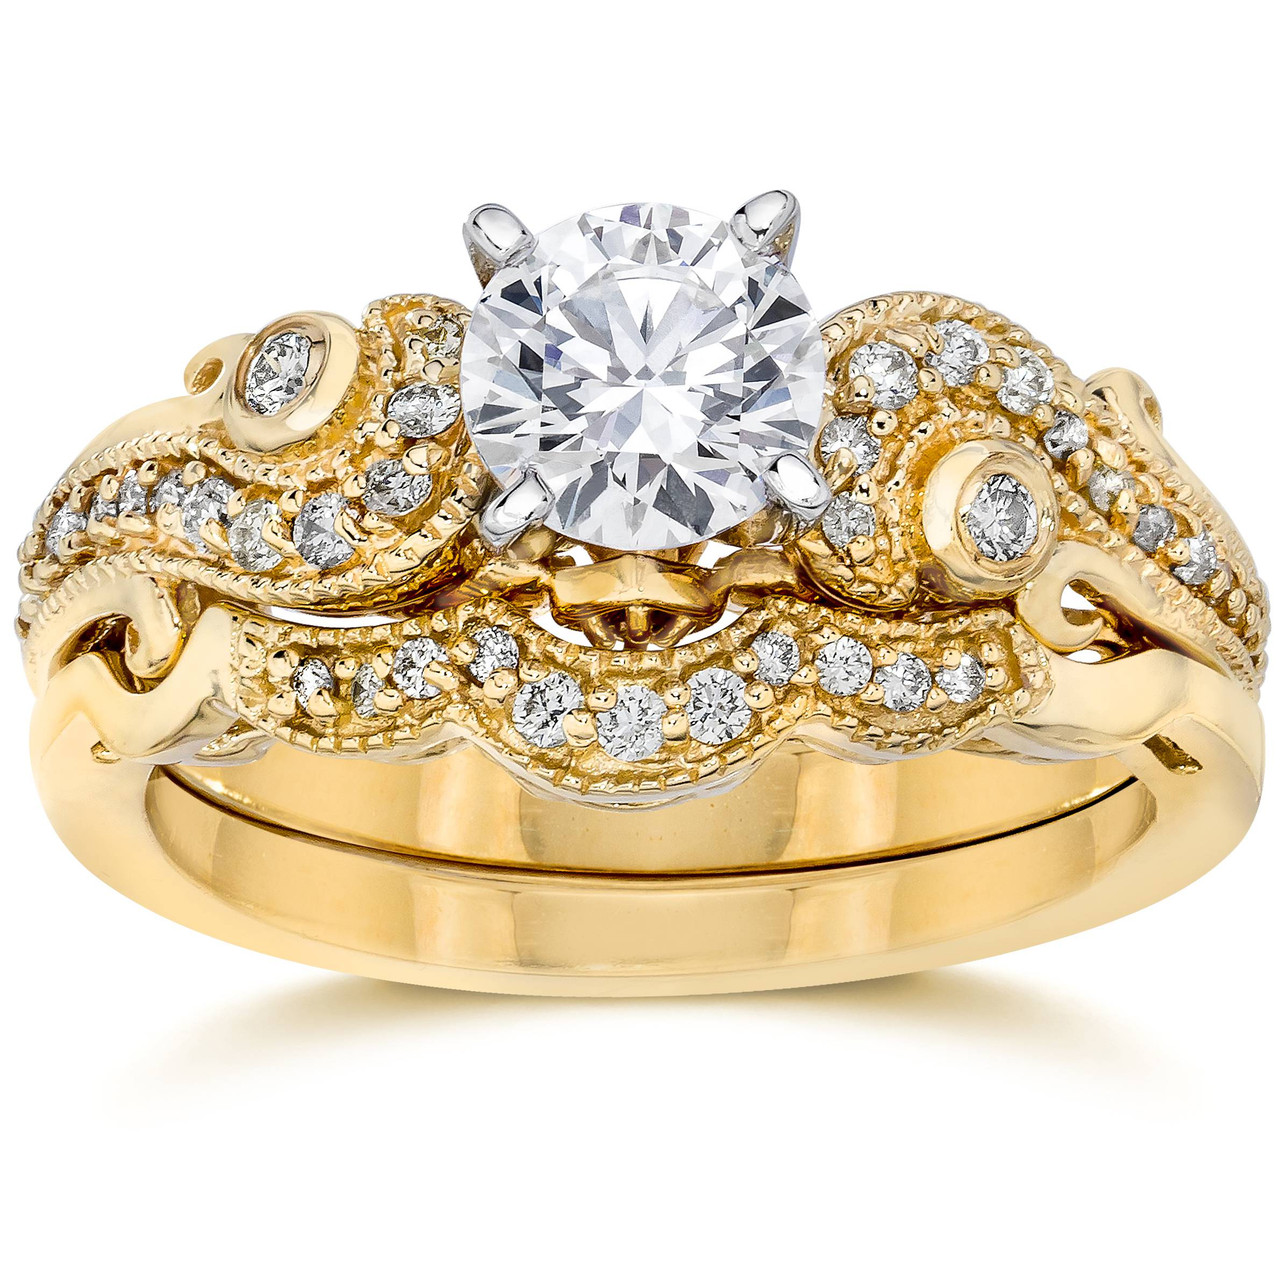 double wedding diamonds diamond row jewelry rings gold shop cathedral womens ring with yellow anniversary bands band